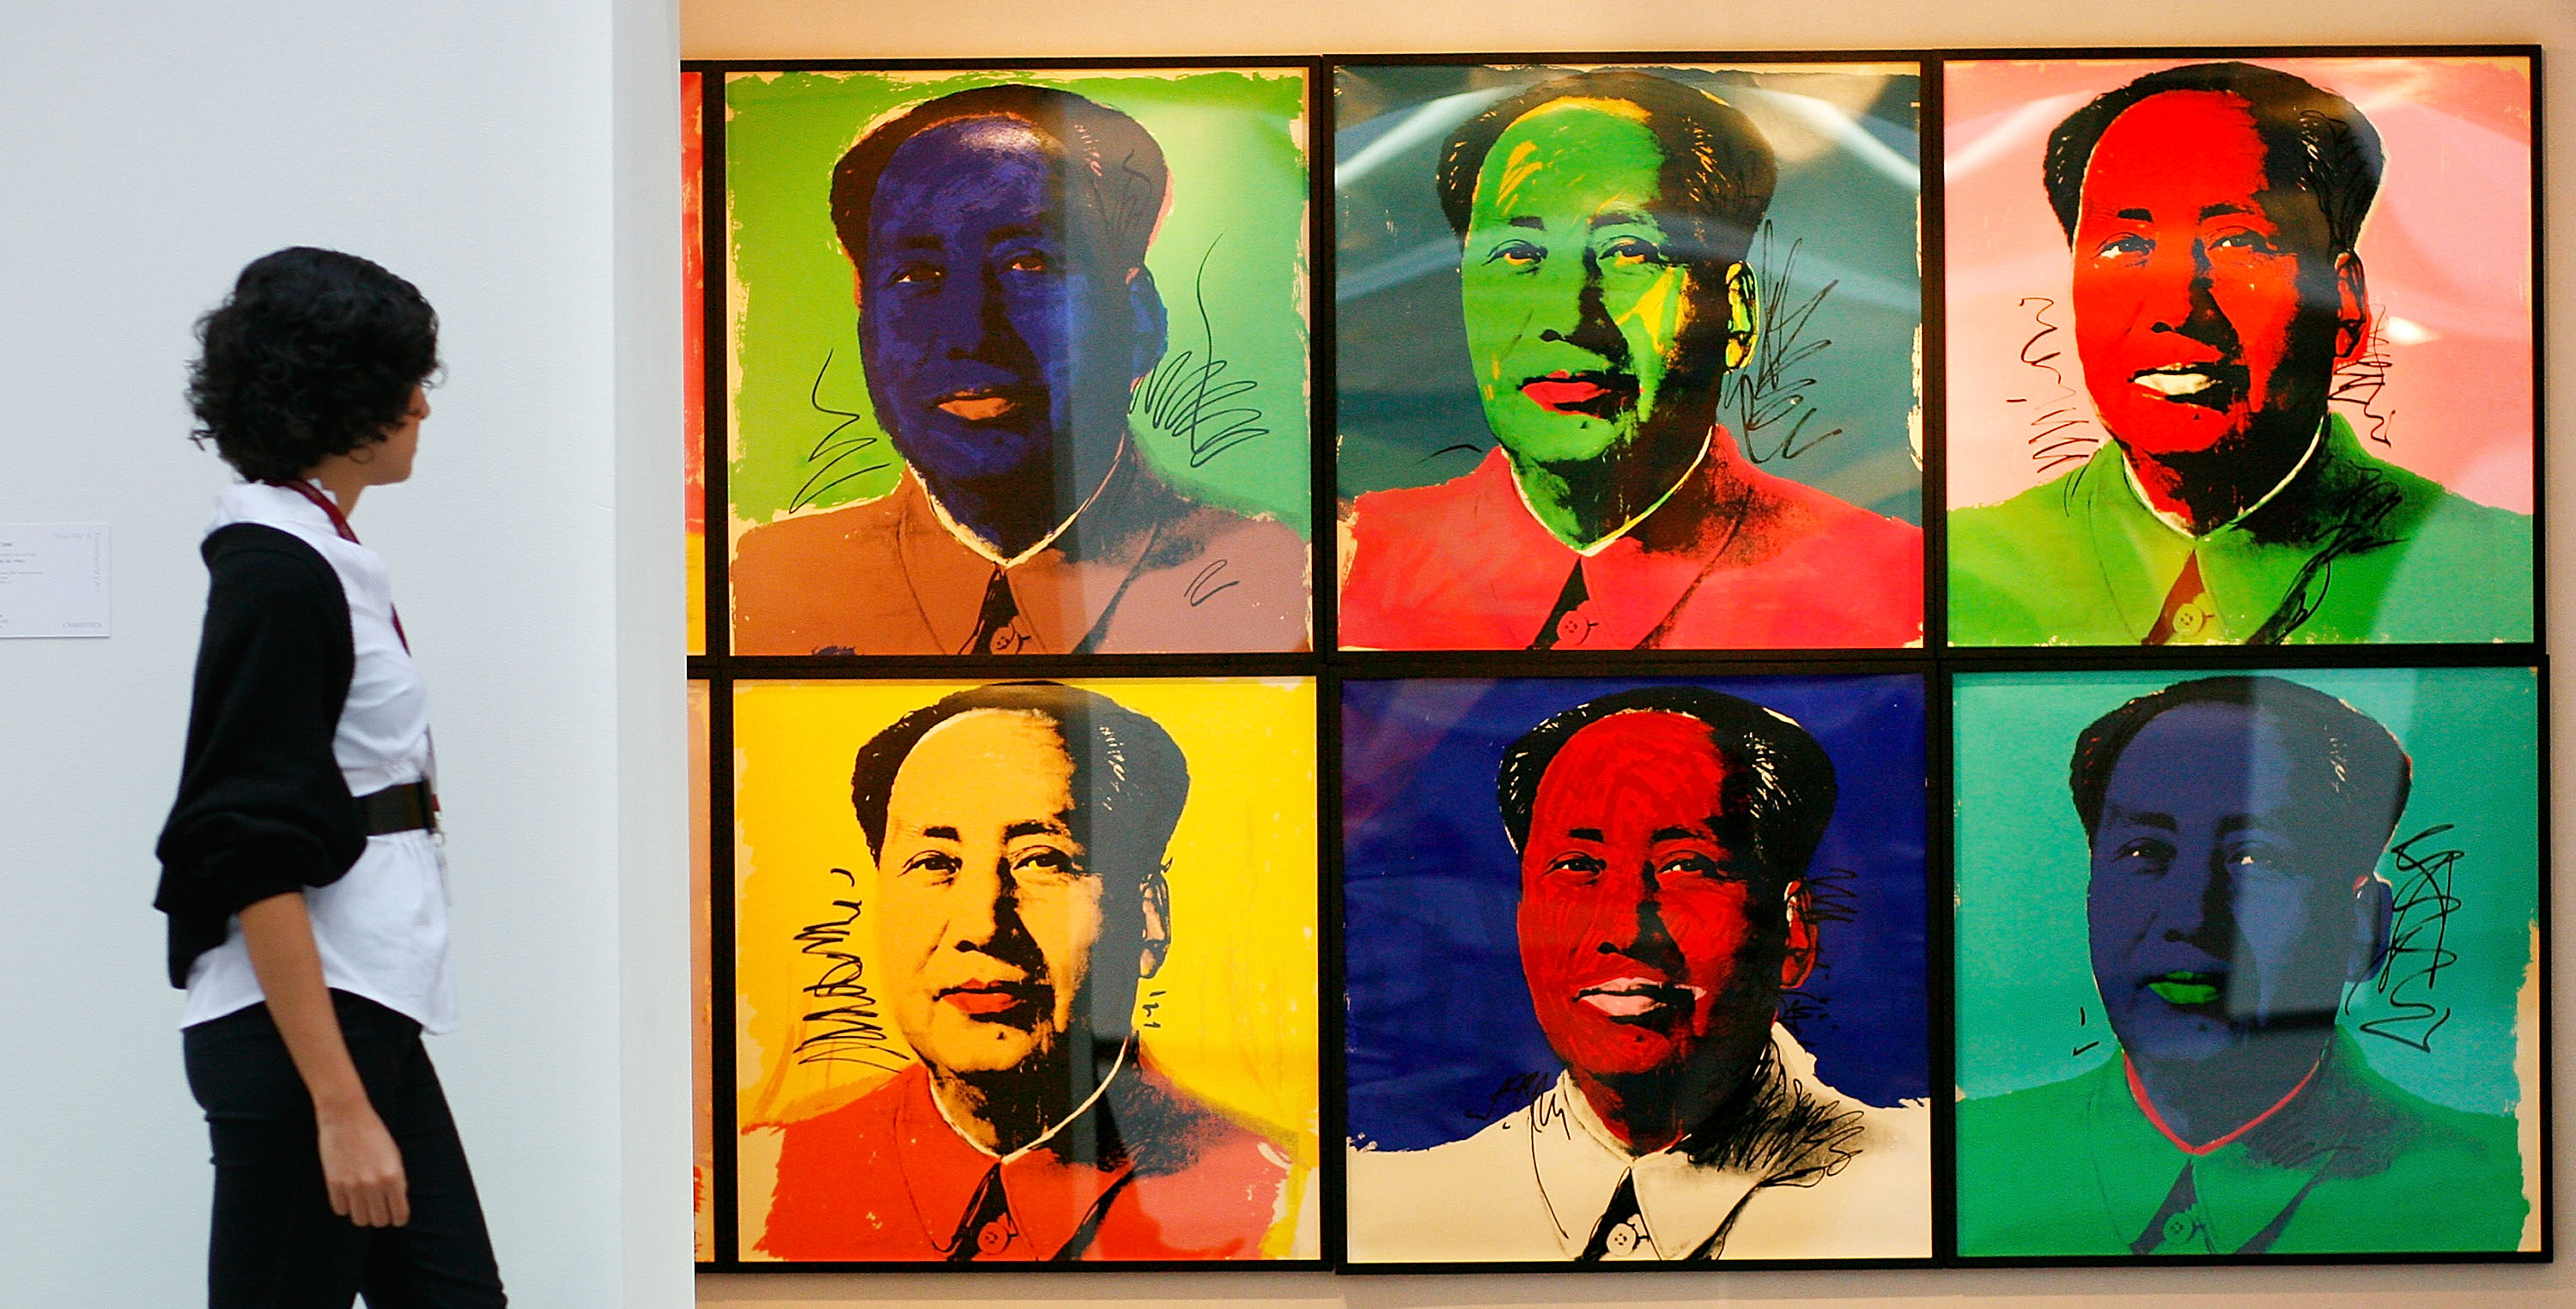 Mao Commemorated and Castigated, 40 Years Later